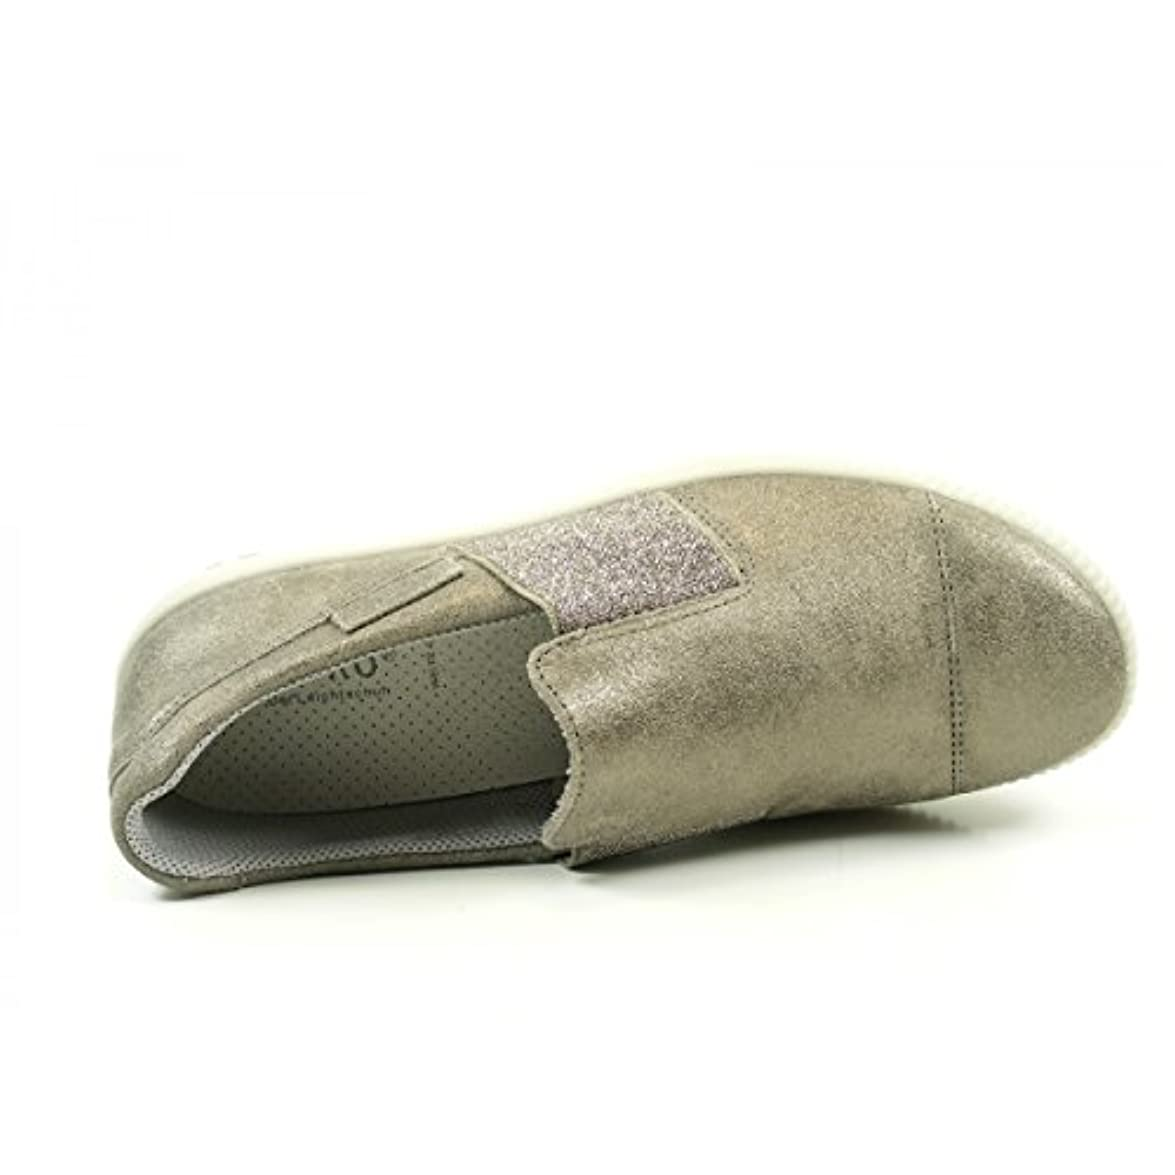 Legero Donne Slipper 1-00824-98 Lavagna